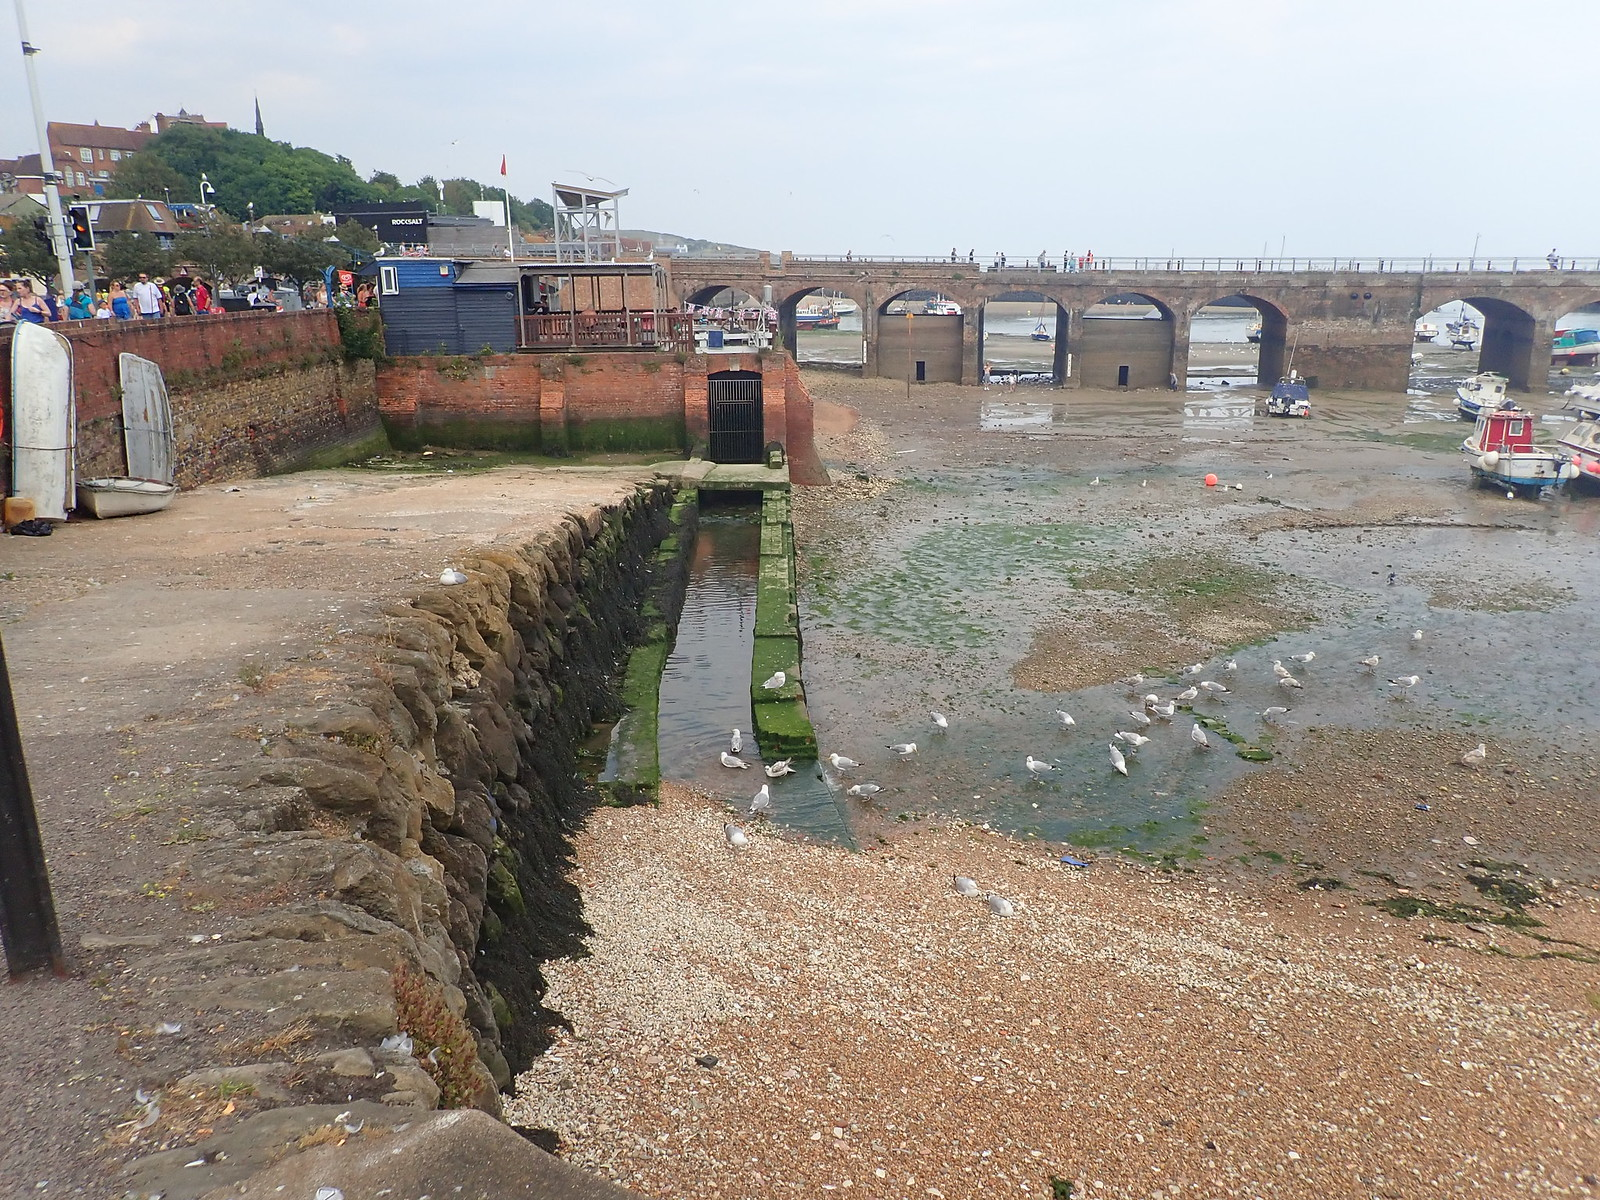 photo from walk Sea walk to Folkestone 07/07/2018